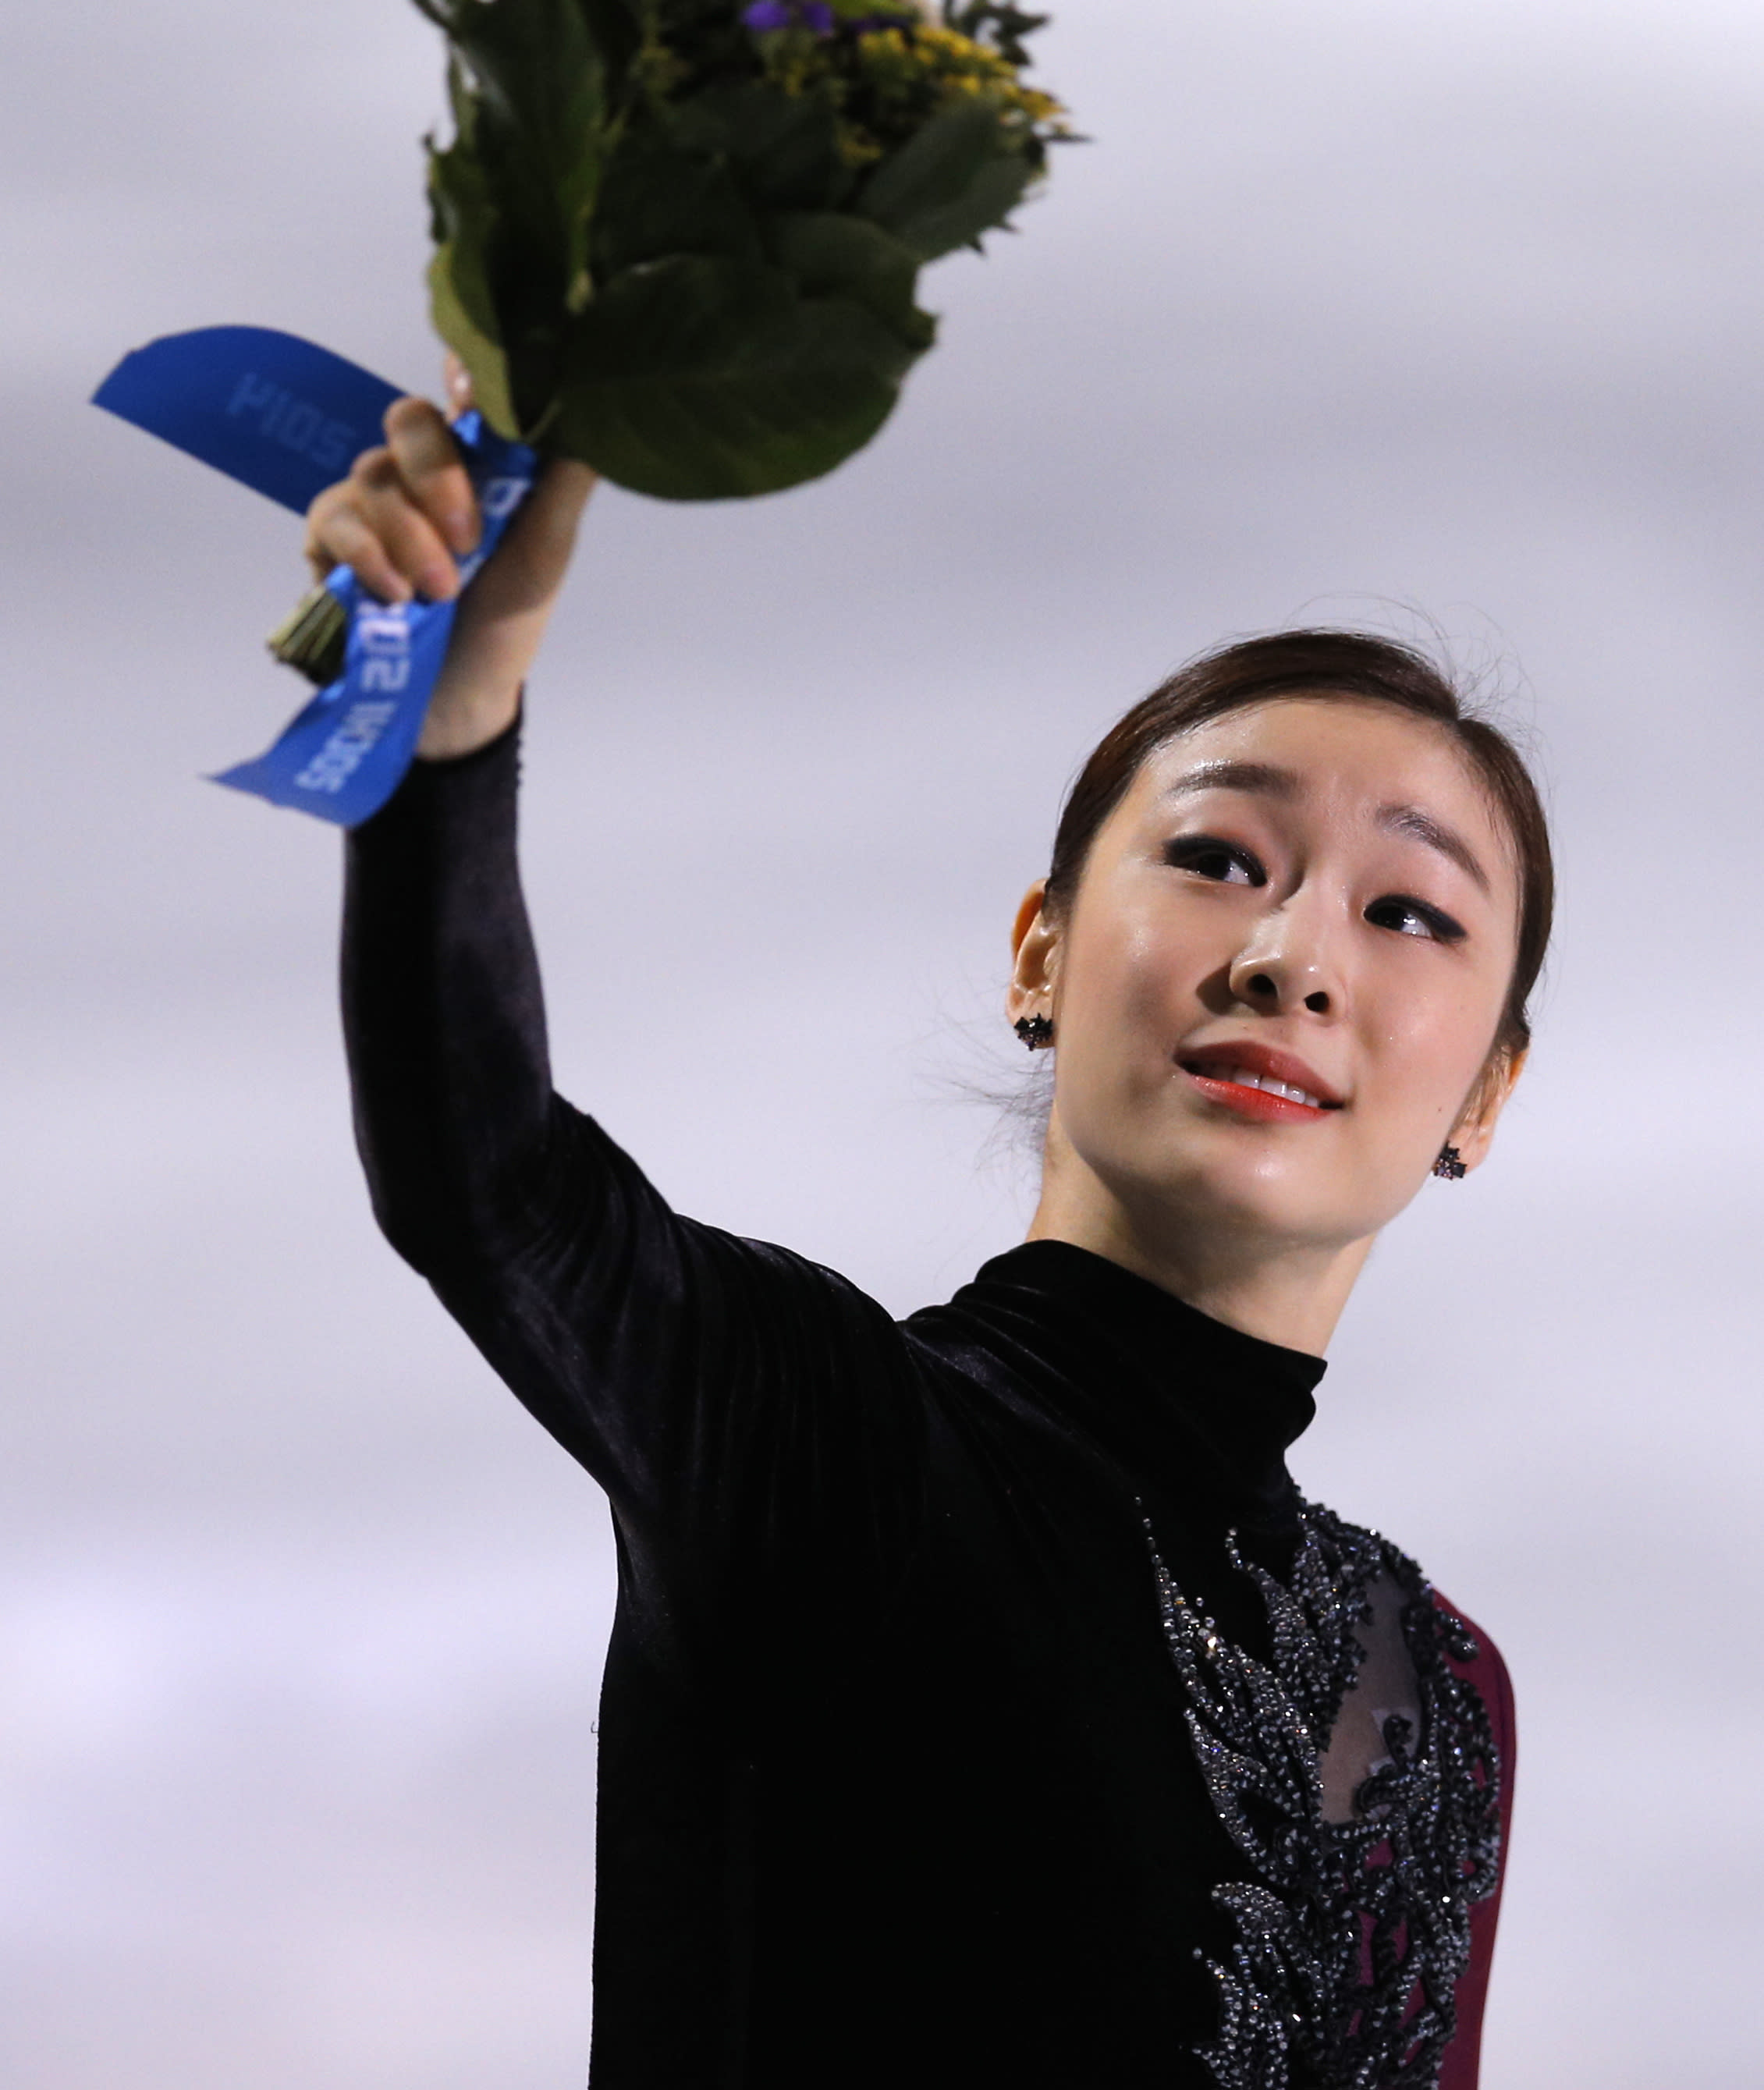 Olympic silver medal at end of Yuna Kim's career